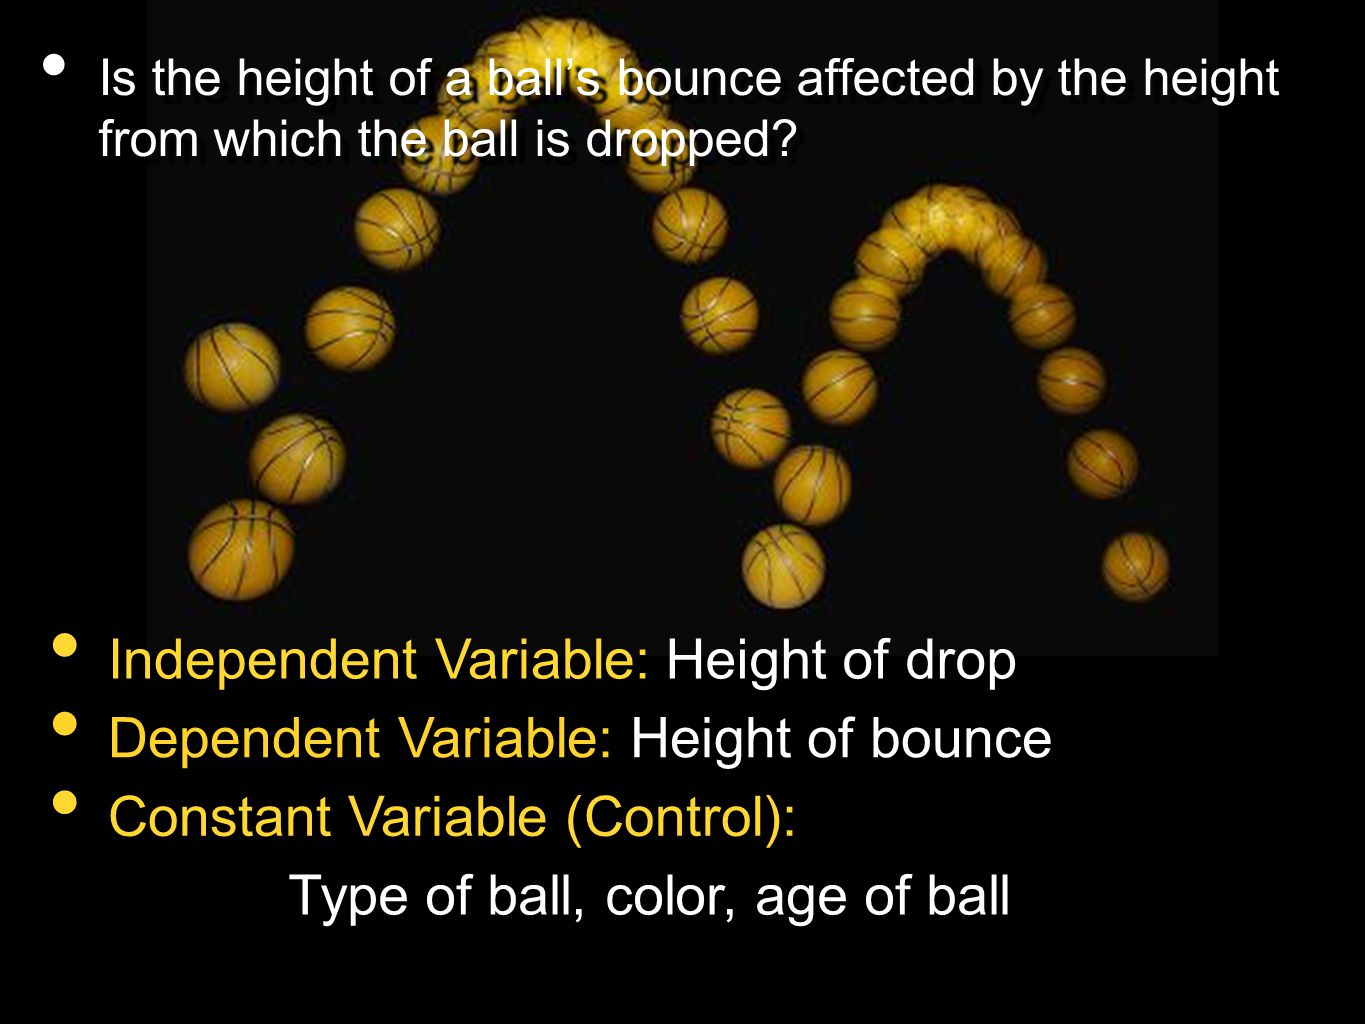 Type of ball, color, age of ball